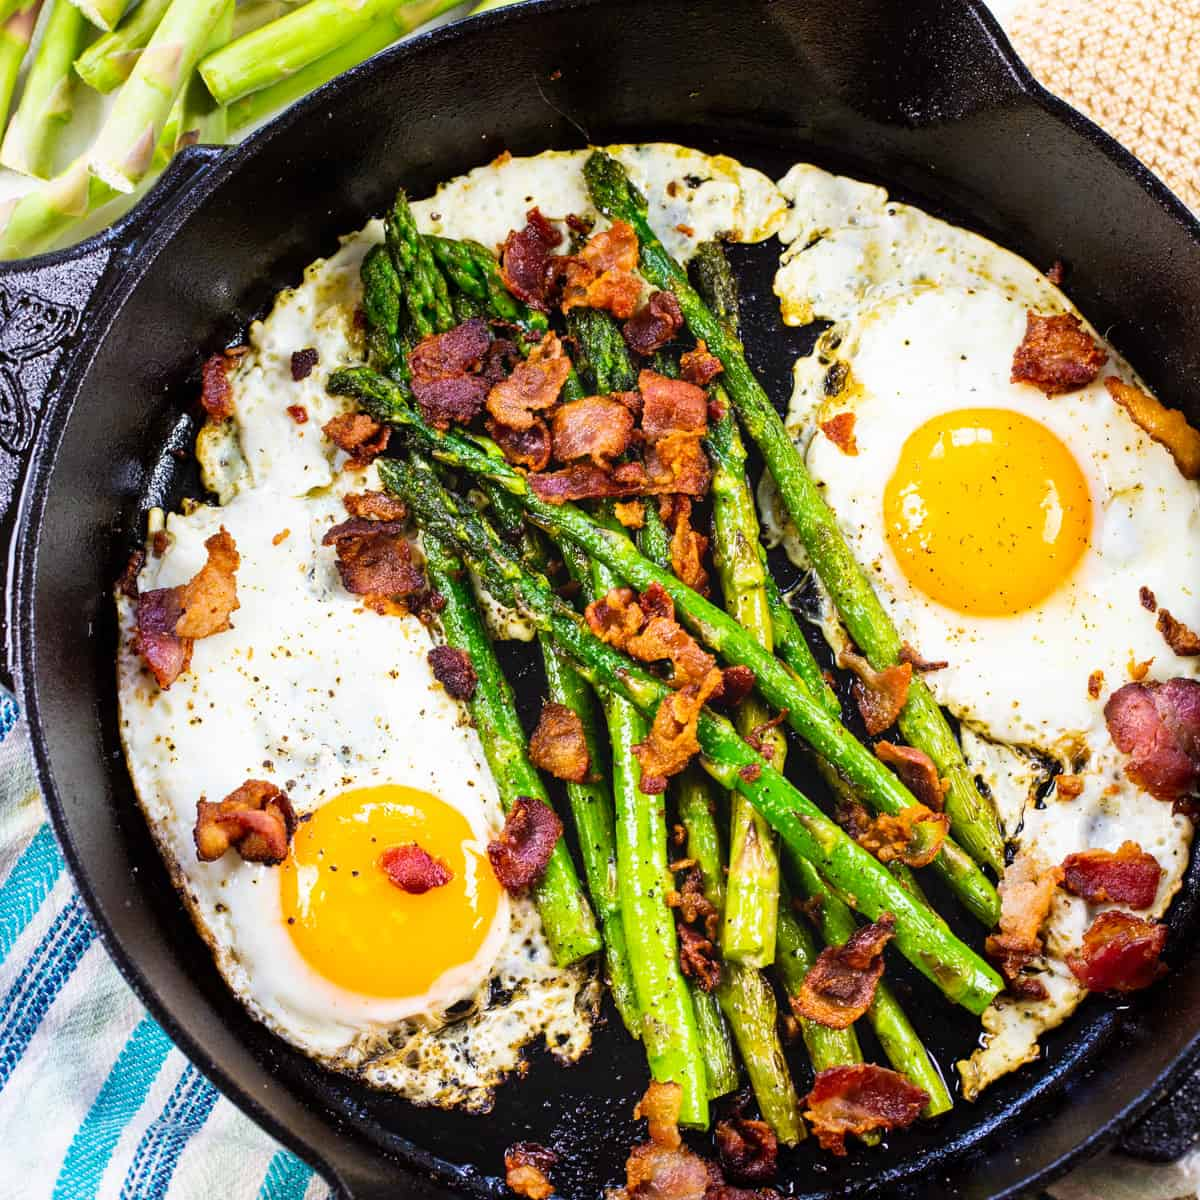 One Pan Bacon, Asparagus, and Egg Breakfast in a cast iron pan.